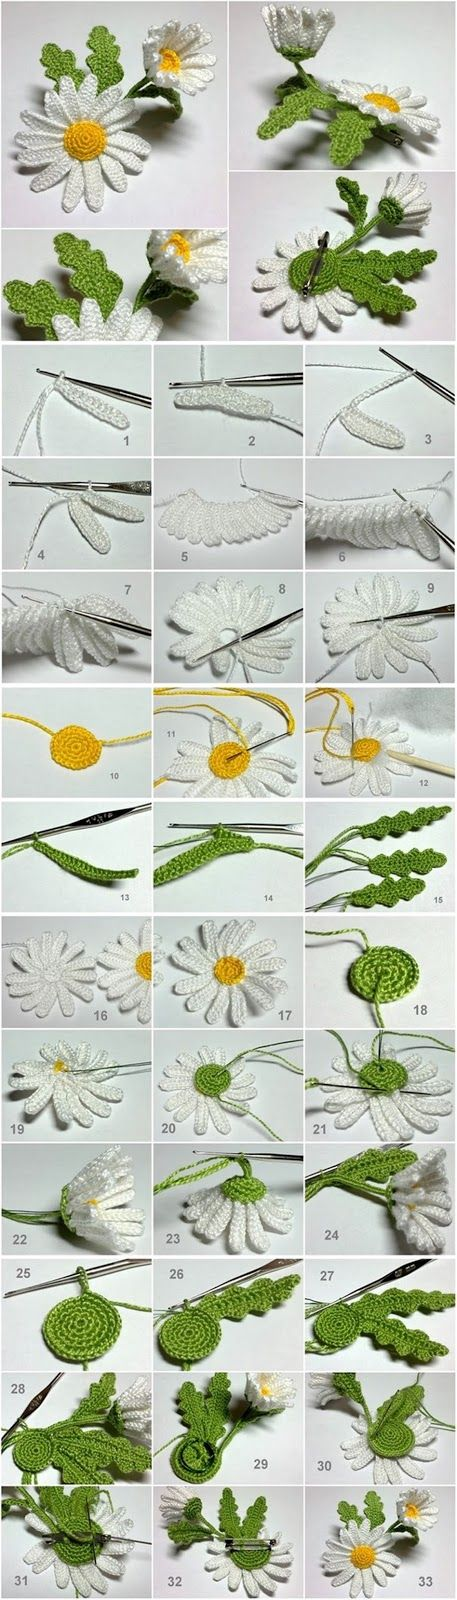 crochet websites free pattern: Learn how to make a beautiful daisy crochet patterns free